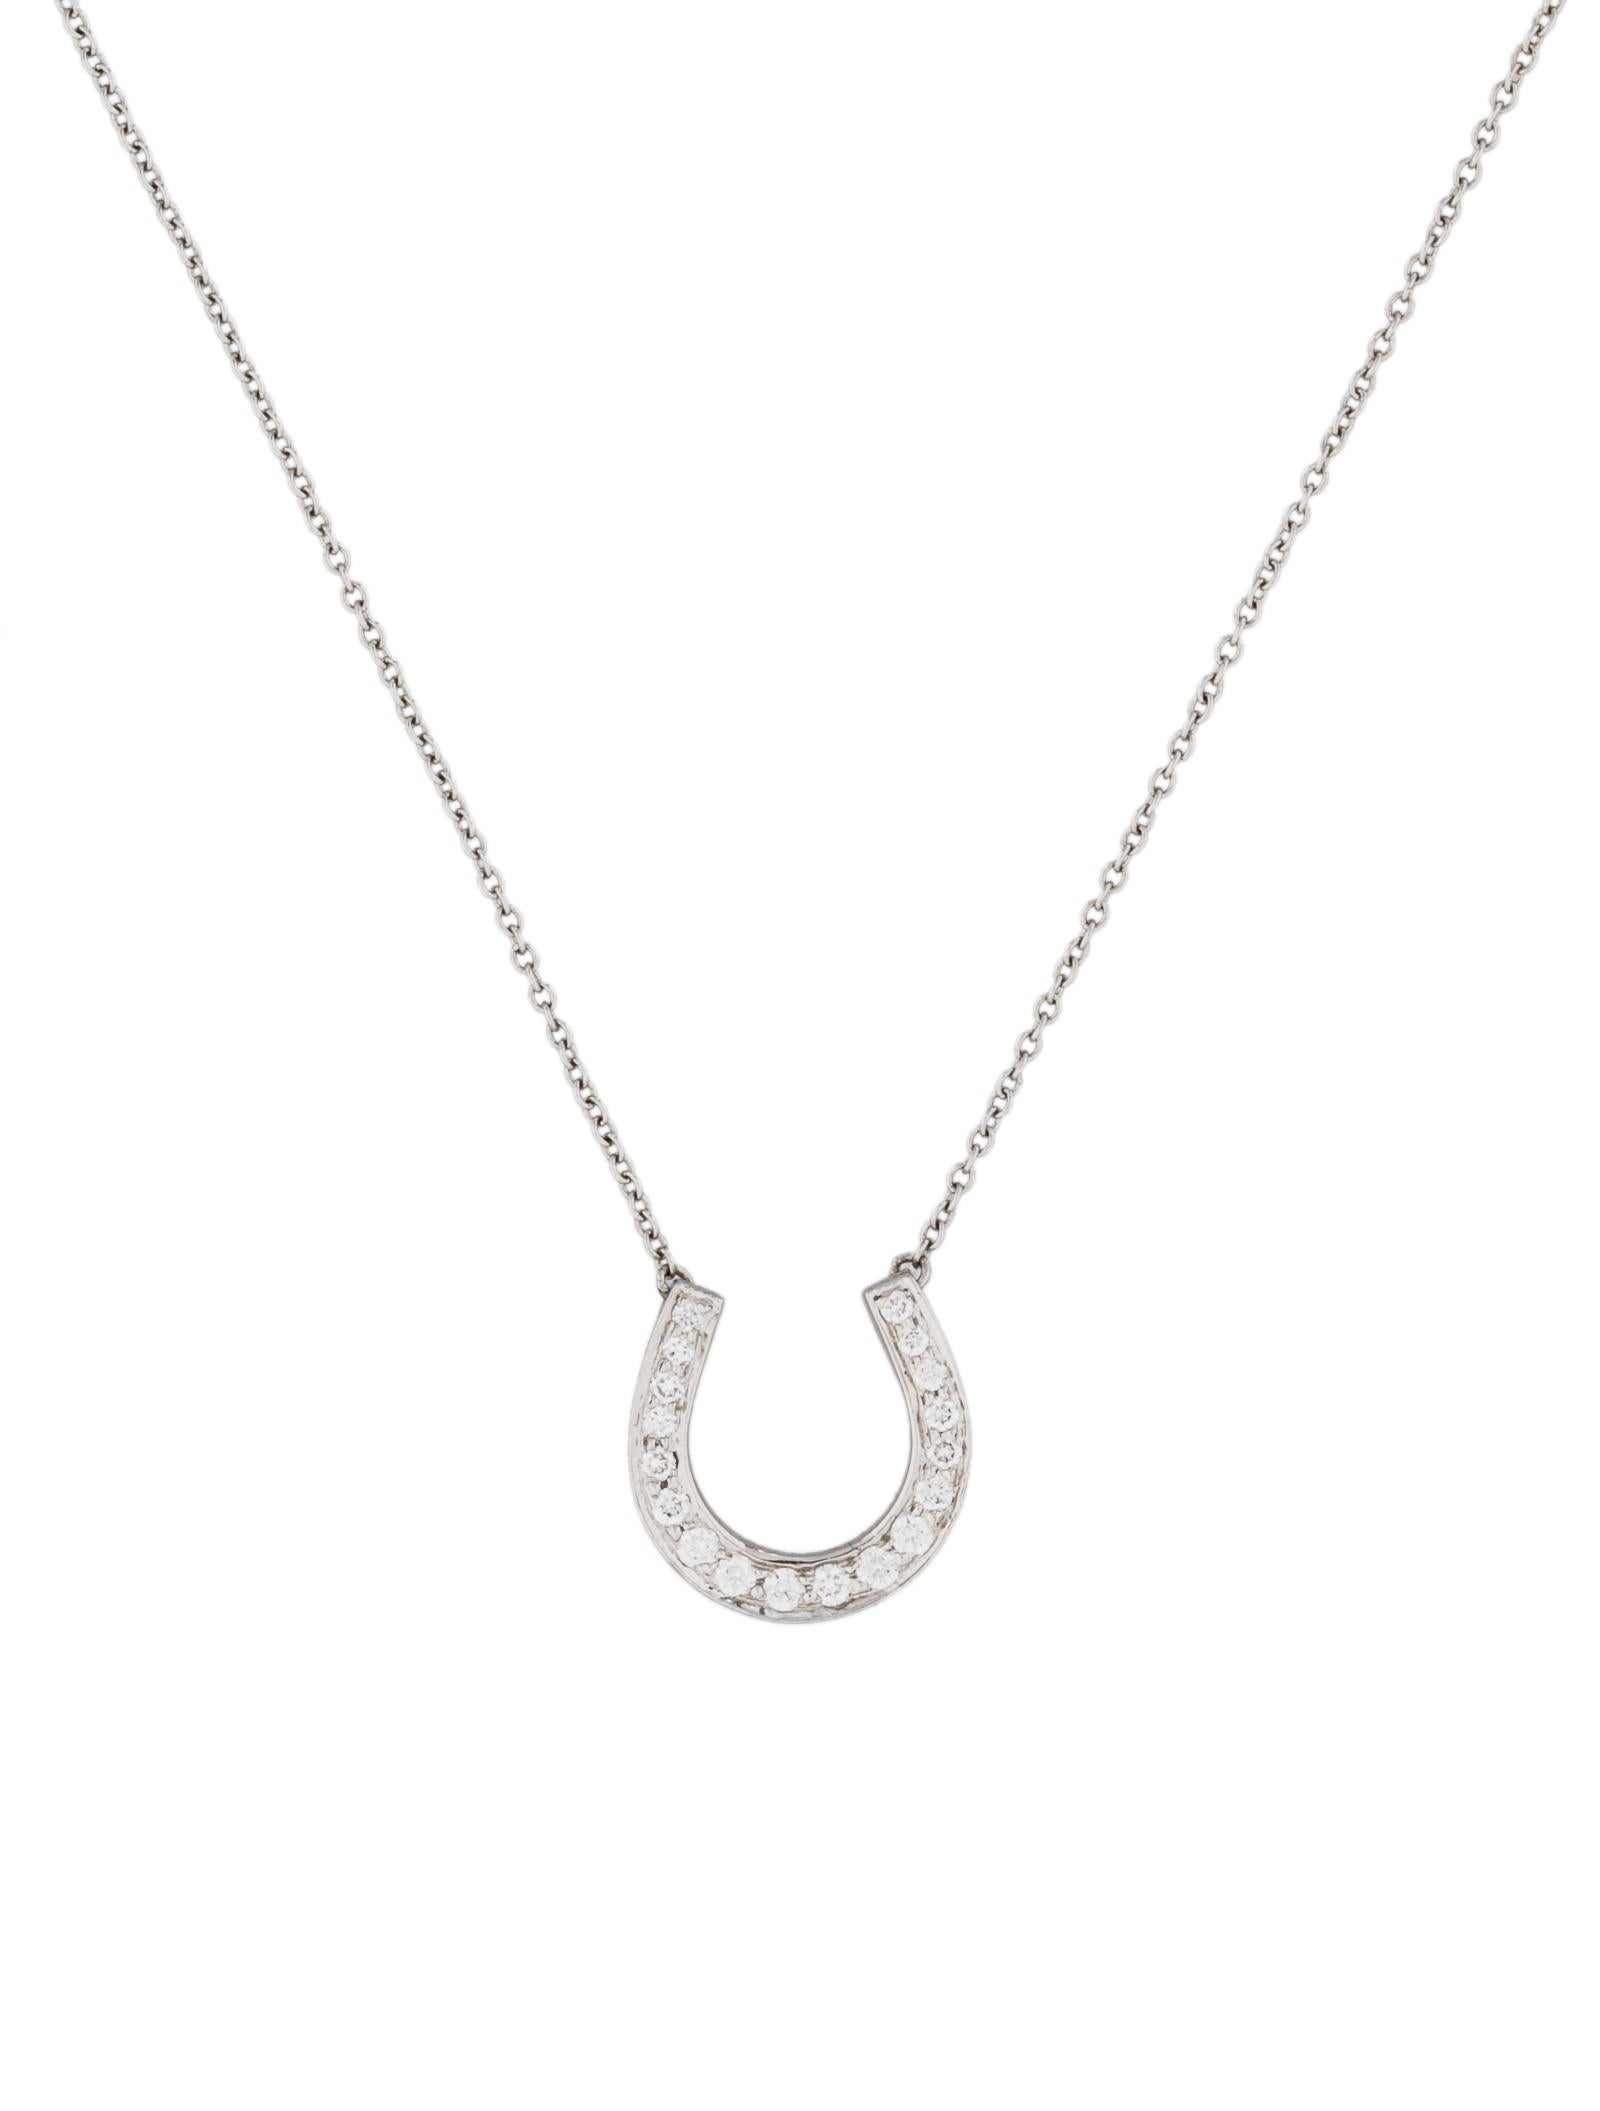 Tiffany co diamond horseshoe pendant necklaces tif25718 the diamond horseshoe pendant aloadofball Image collections